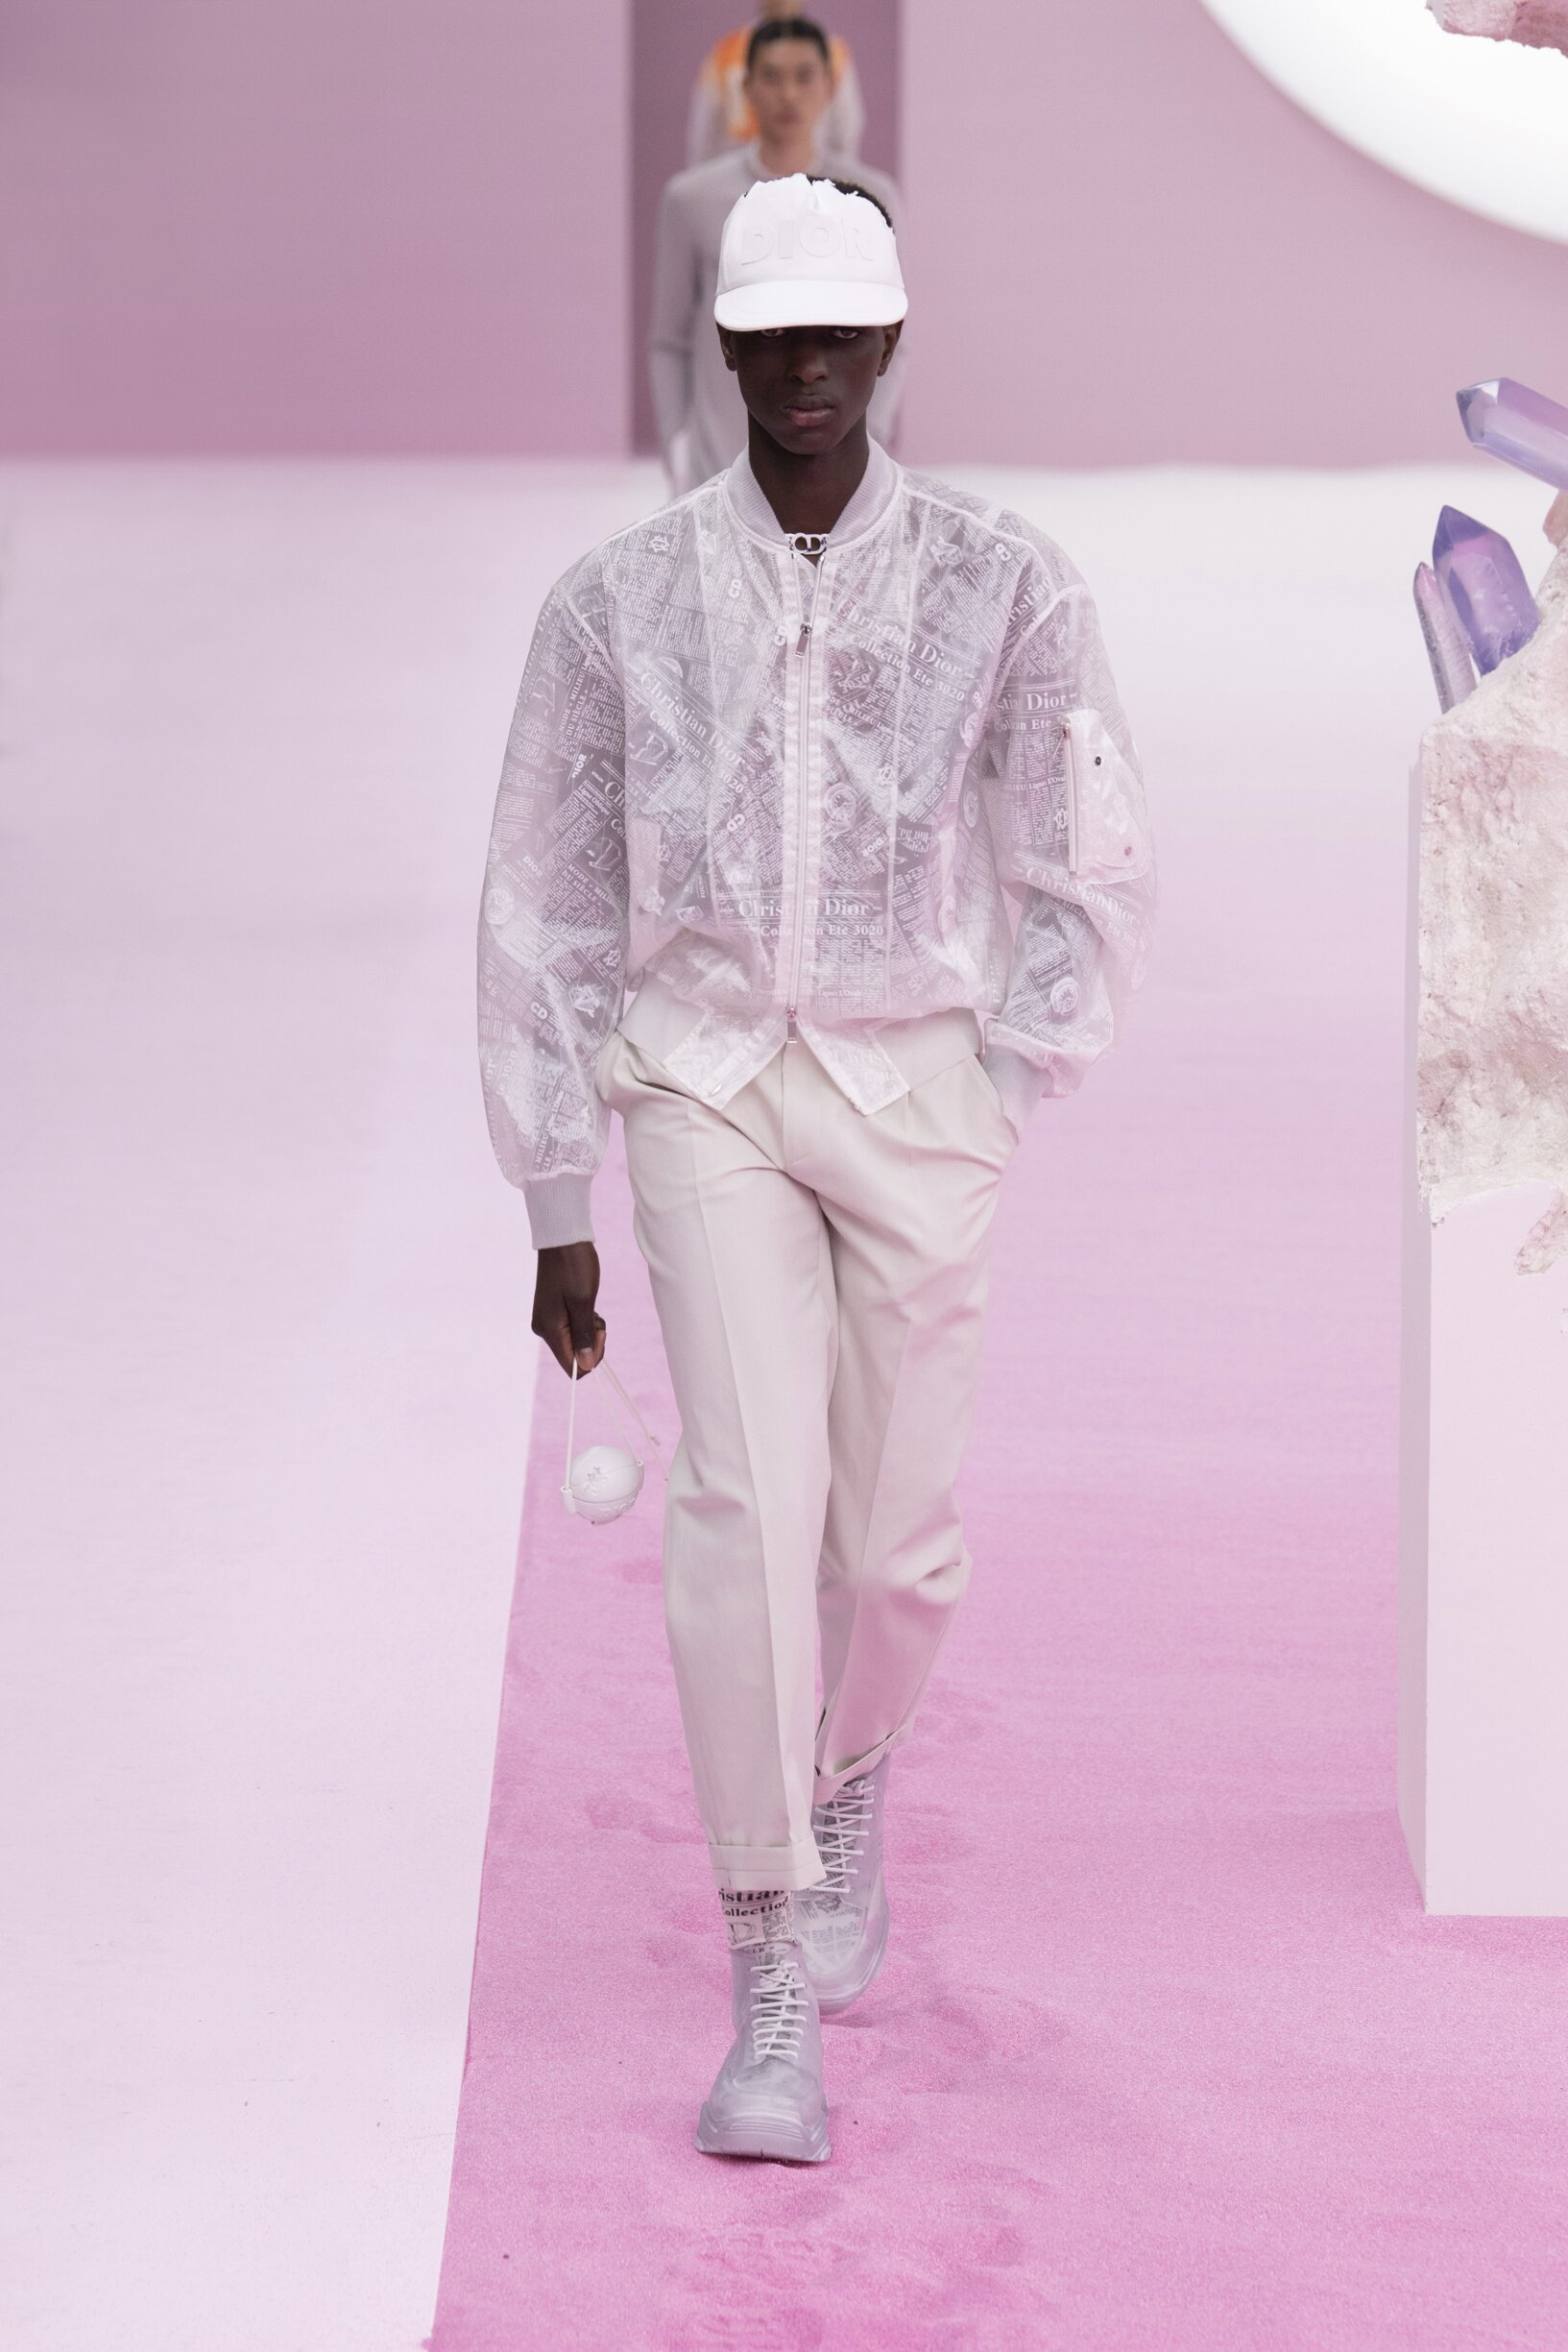 Dior Men's Collection 2020